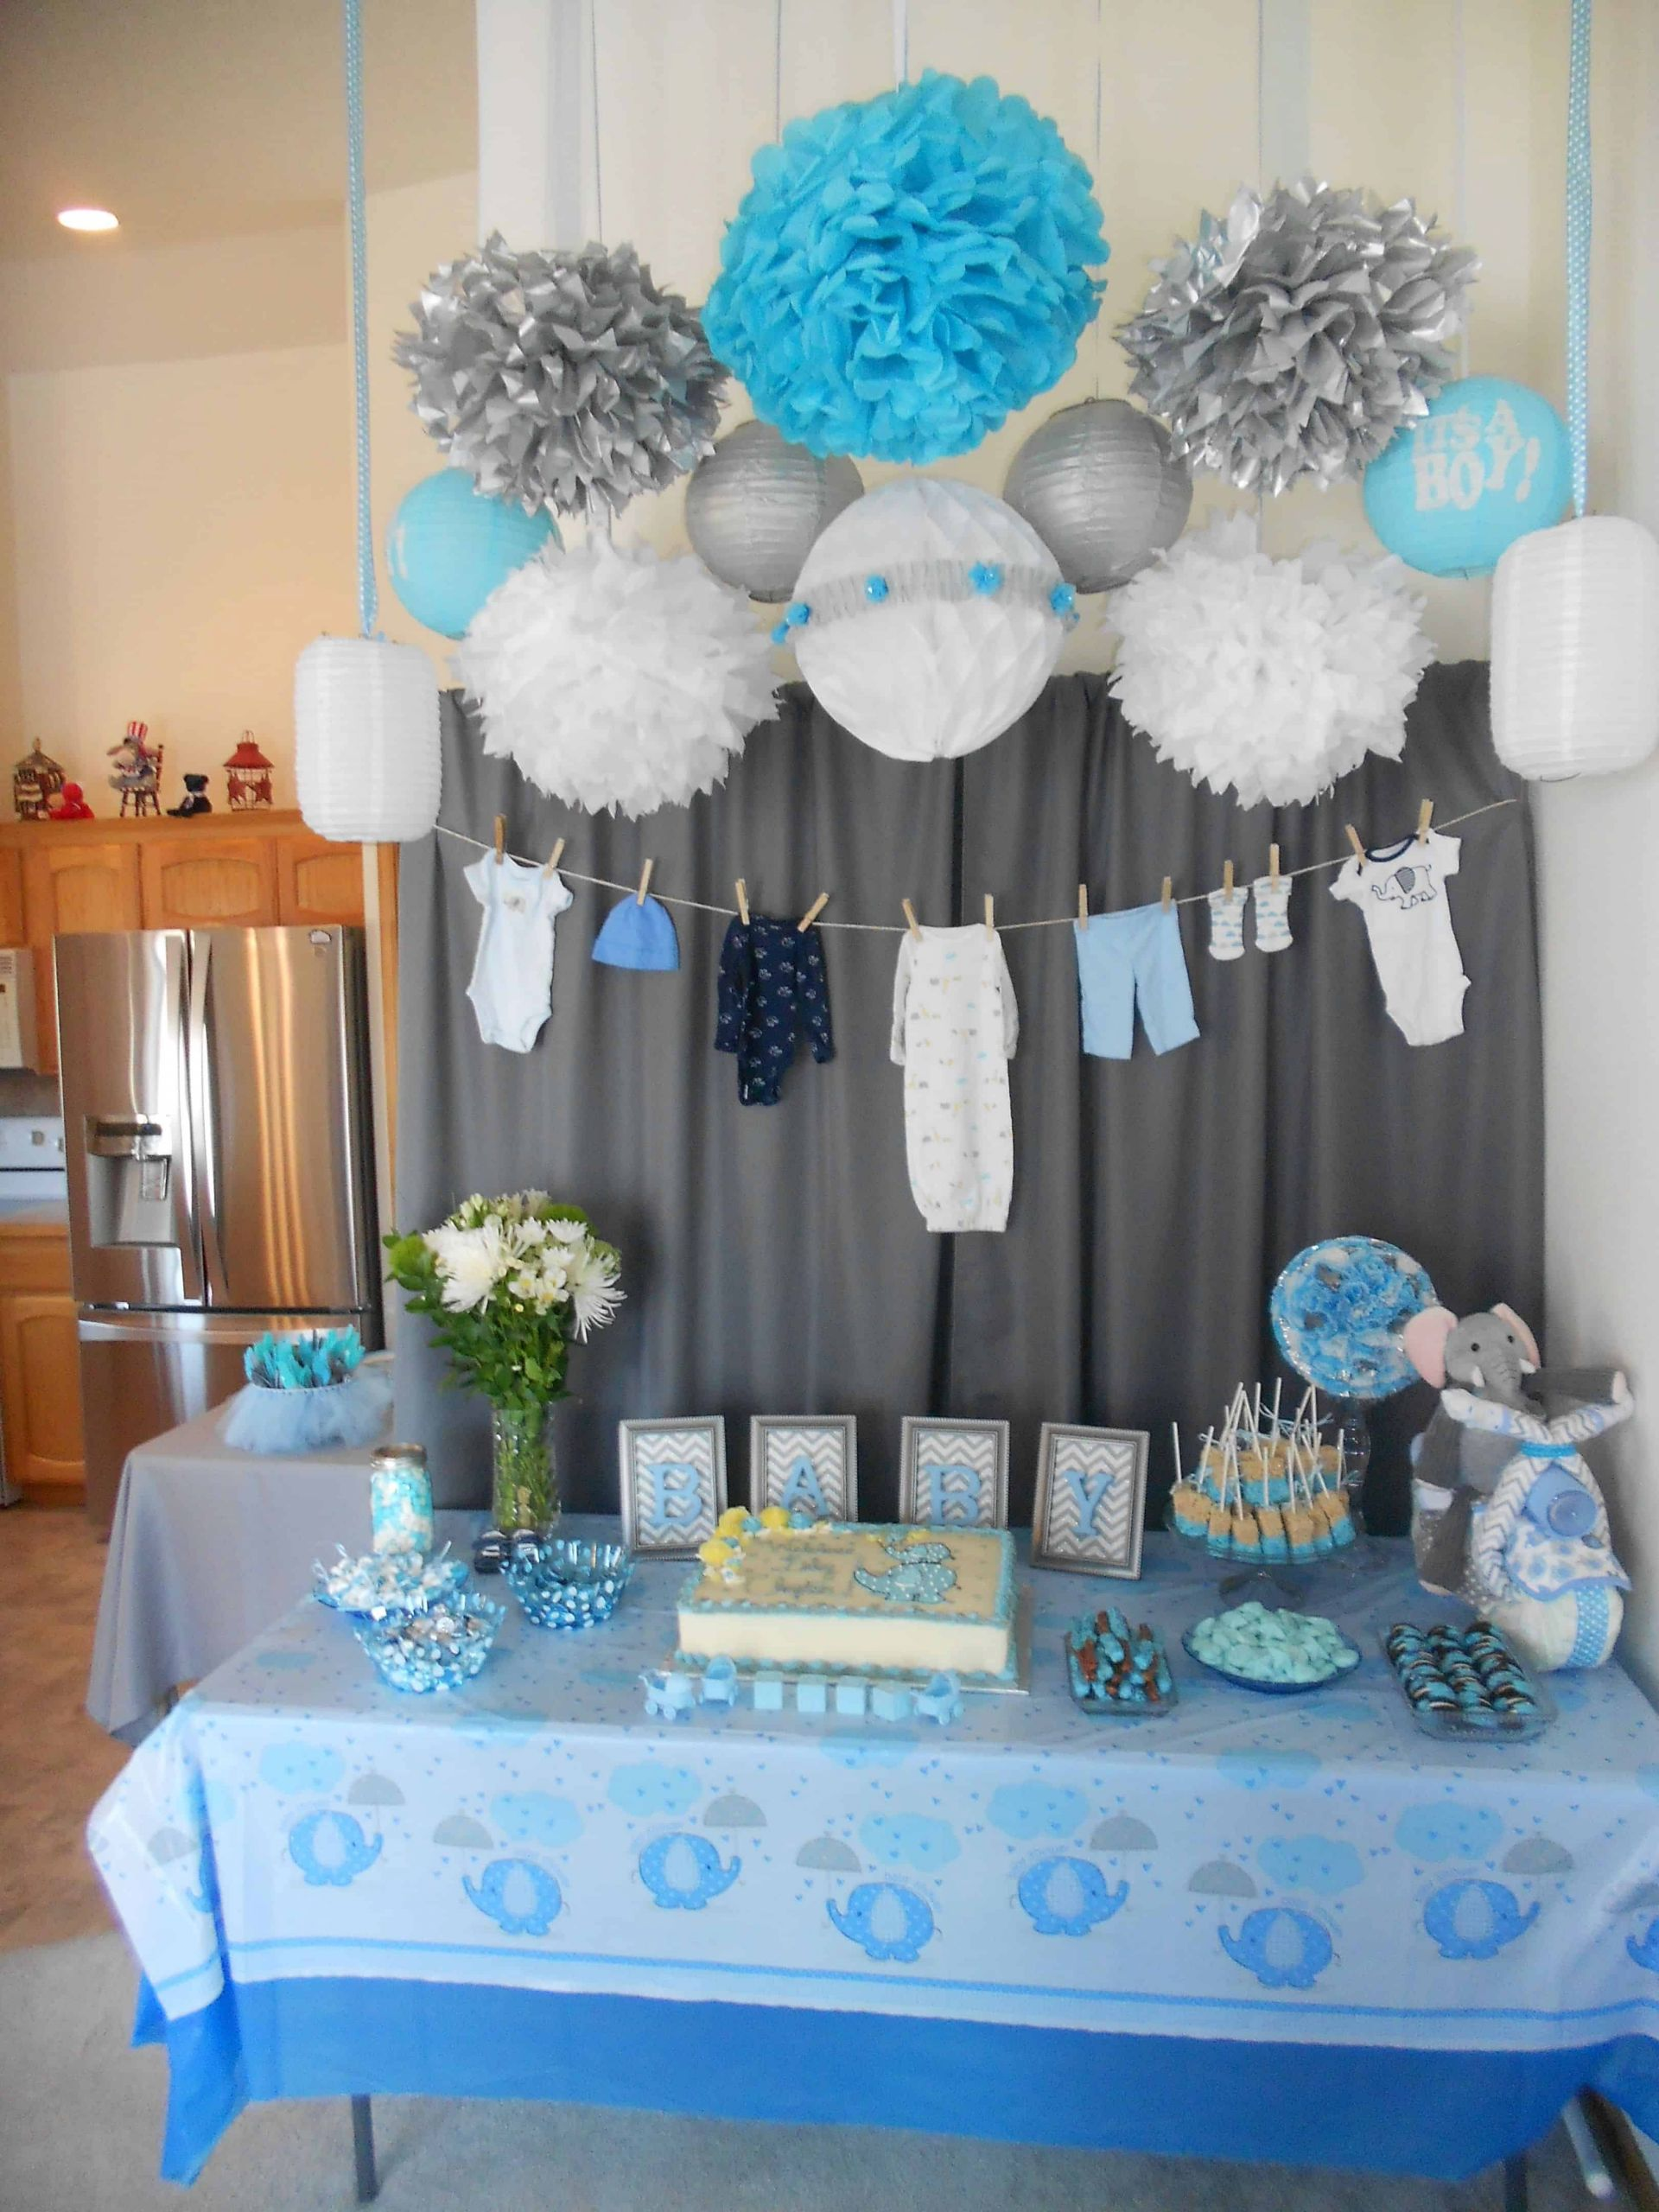 Unique Baby Shower Gift Ideas For Boys  17 Unique Baby Shower Ideas For Boys